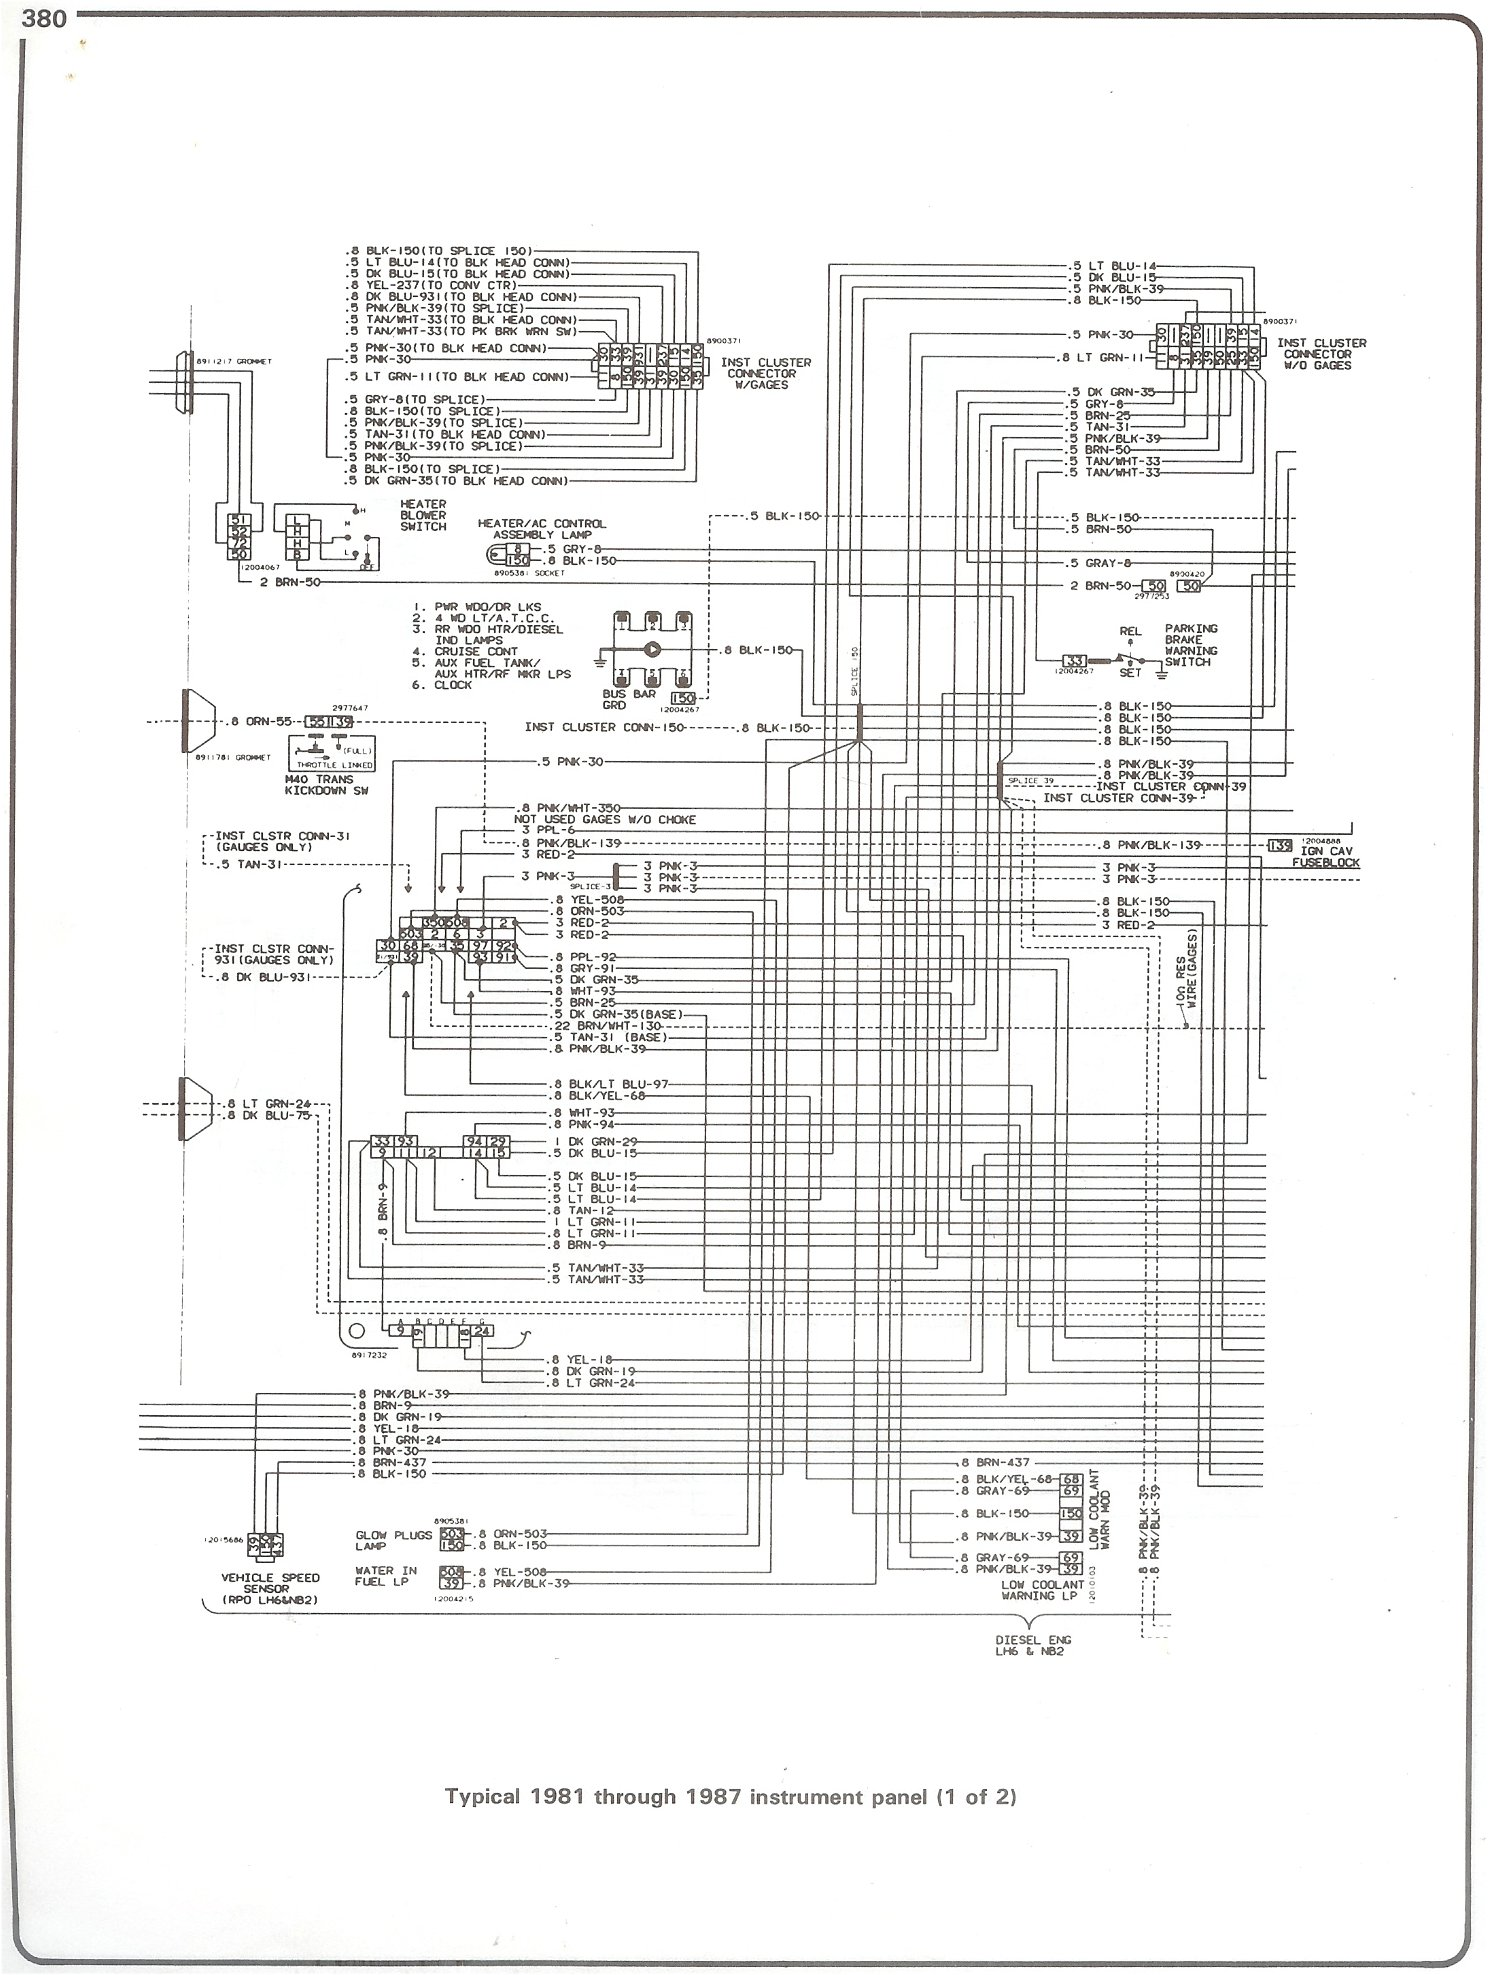 81 87_instrument_pg1 chevrolet wiring schematics chevrolet wiring diagrams instruction chevrolet wiring diagram at webbmarketing.co